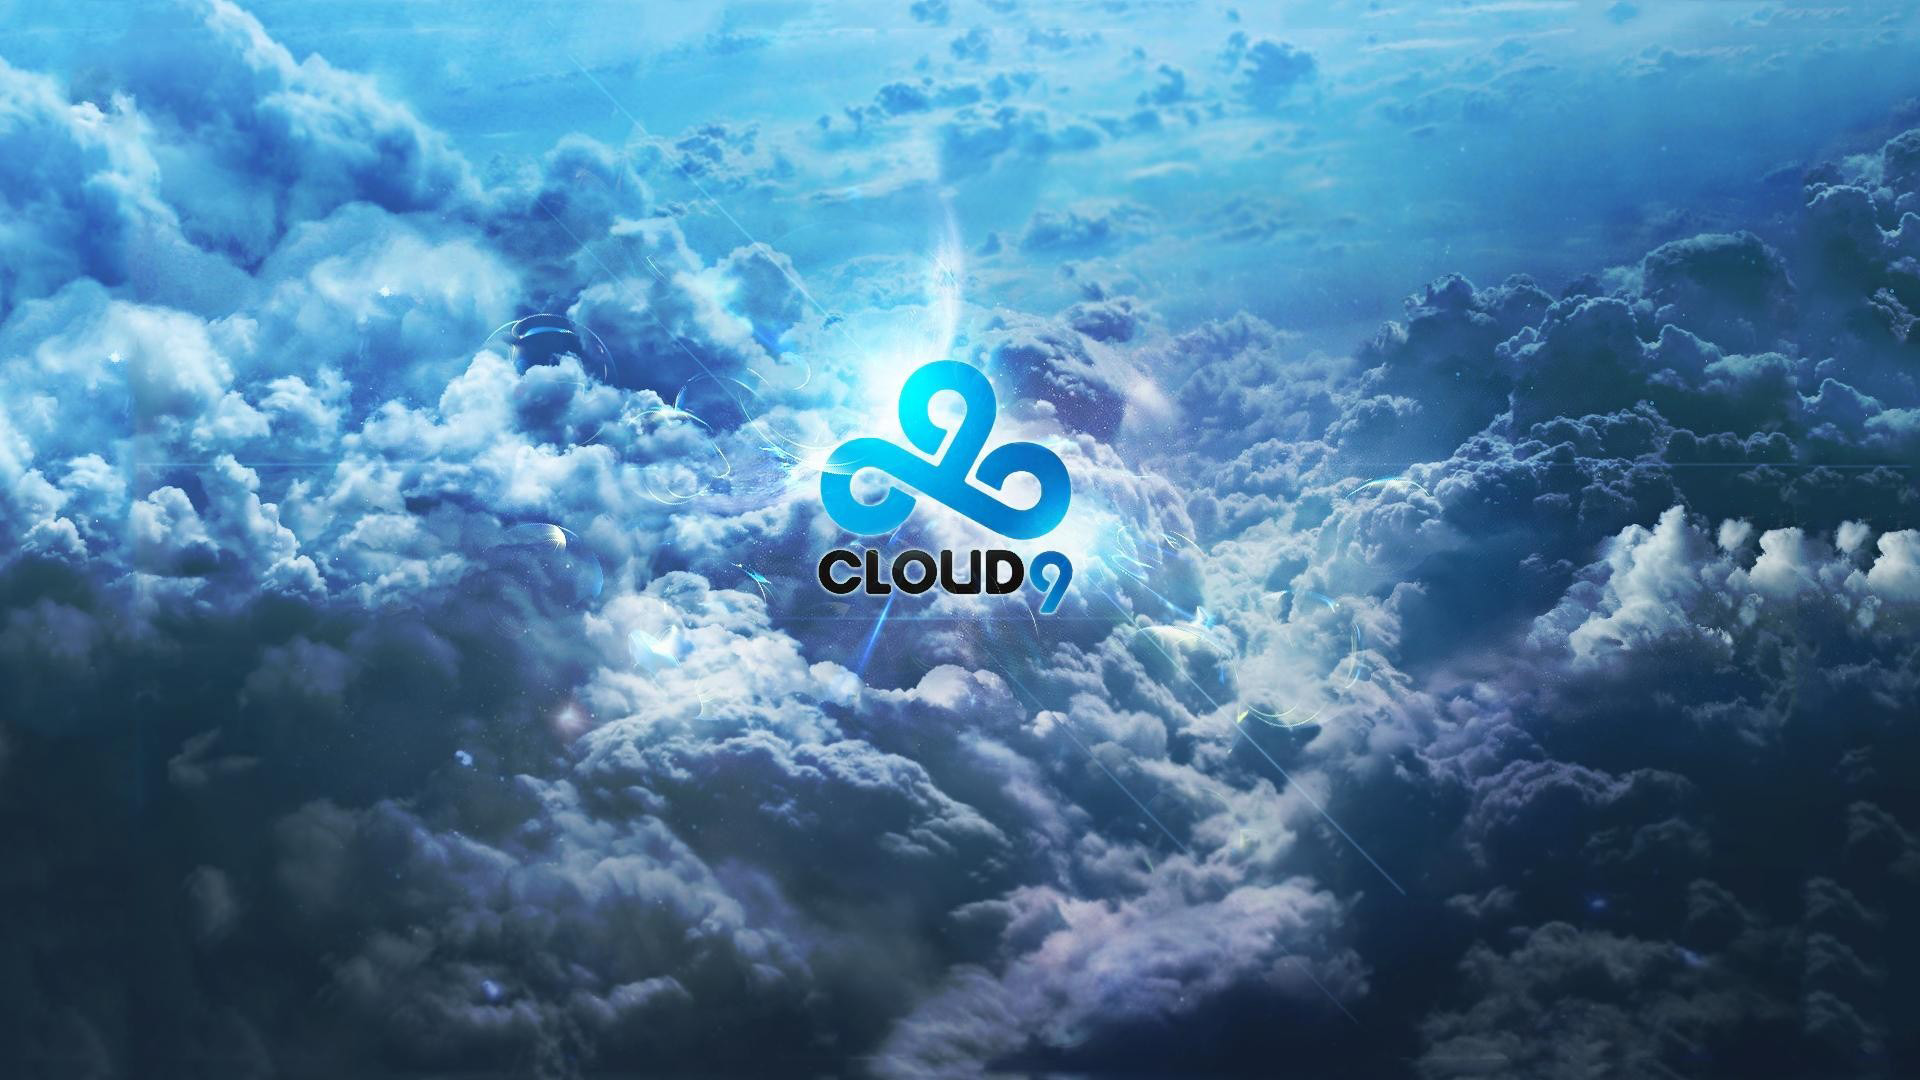 lol cloud 9